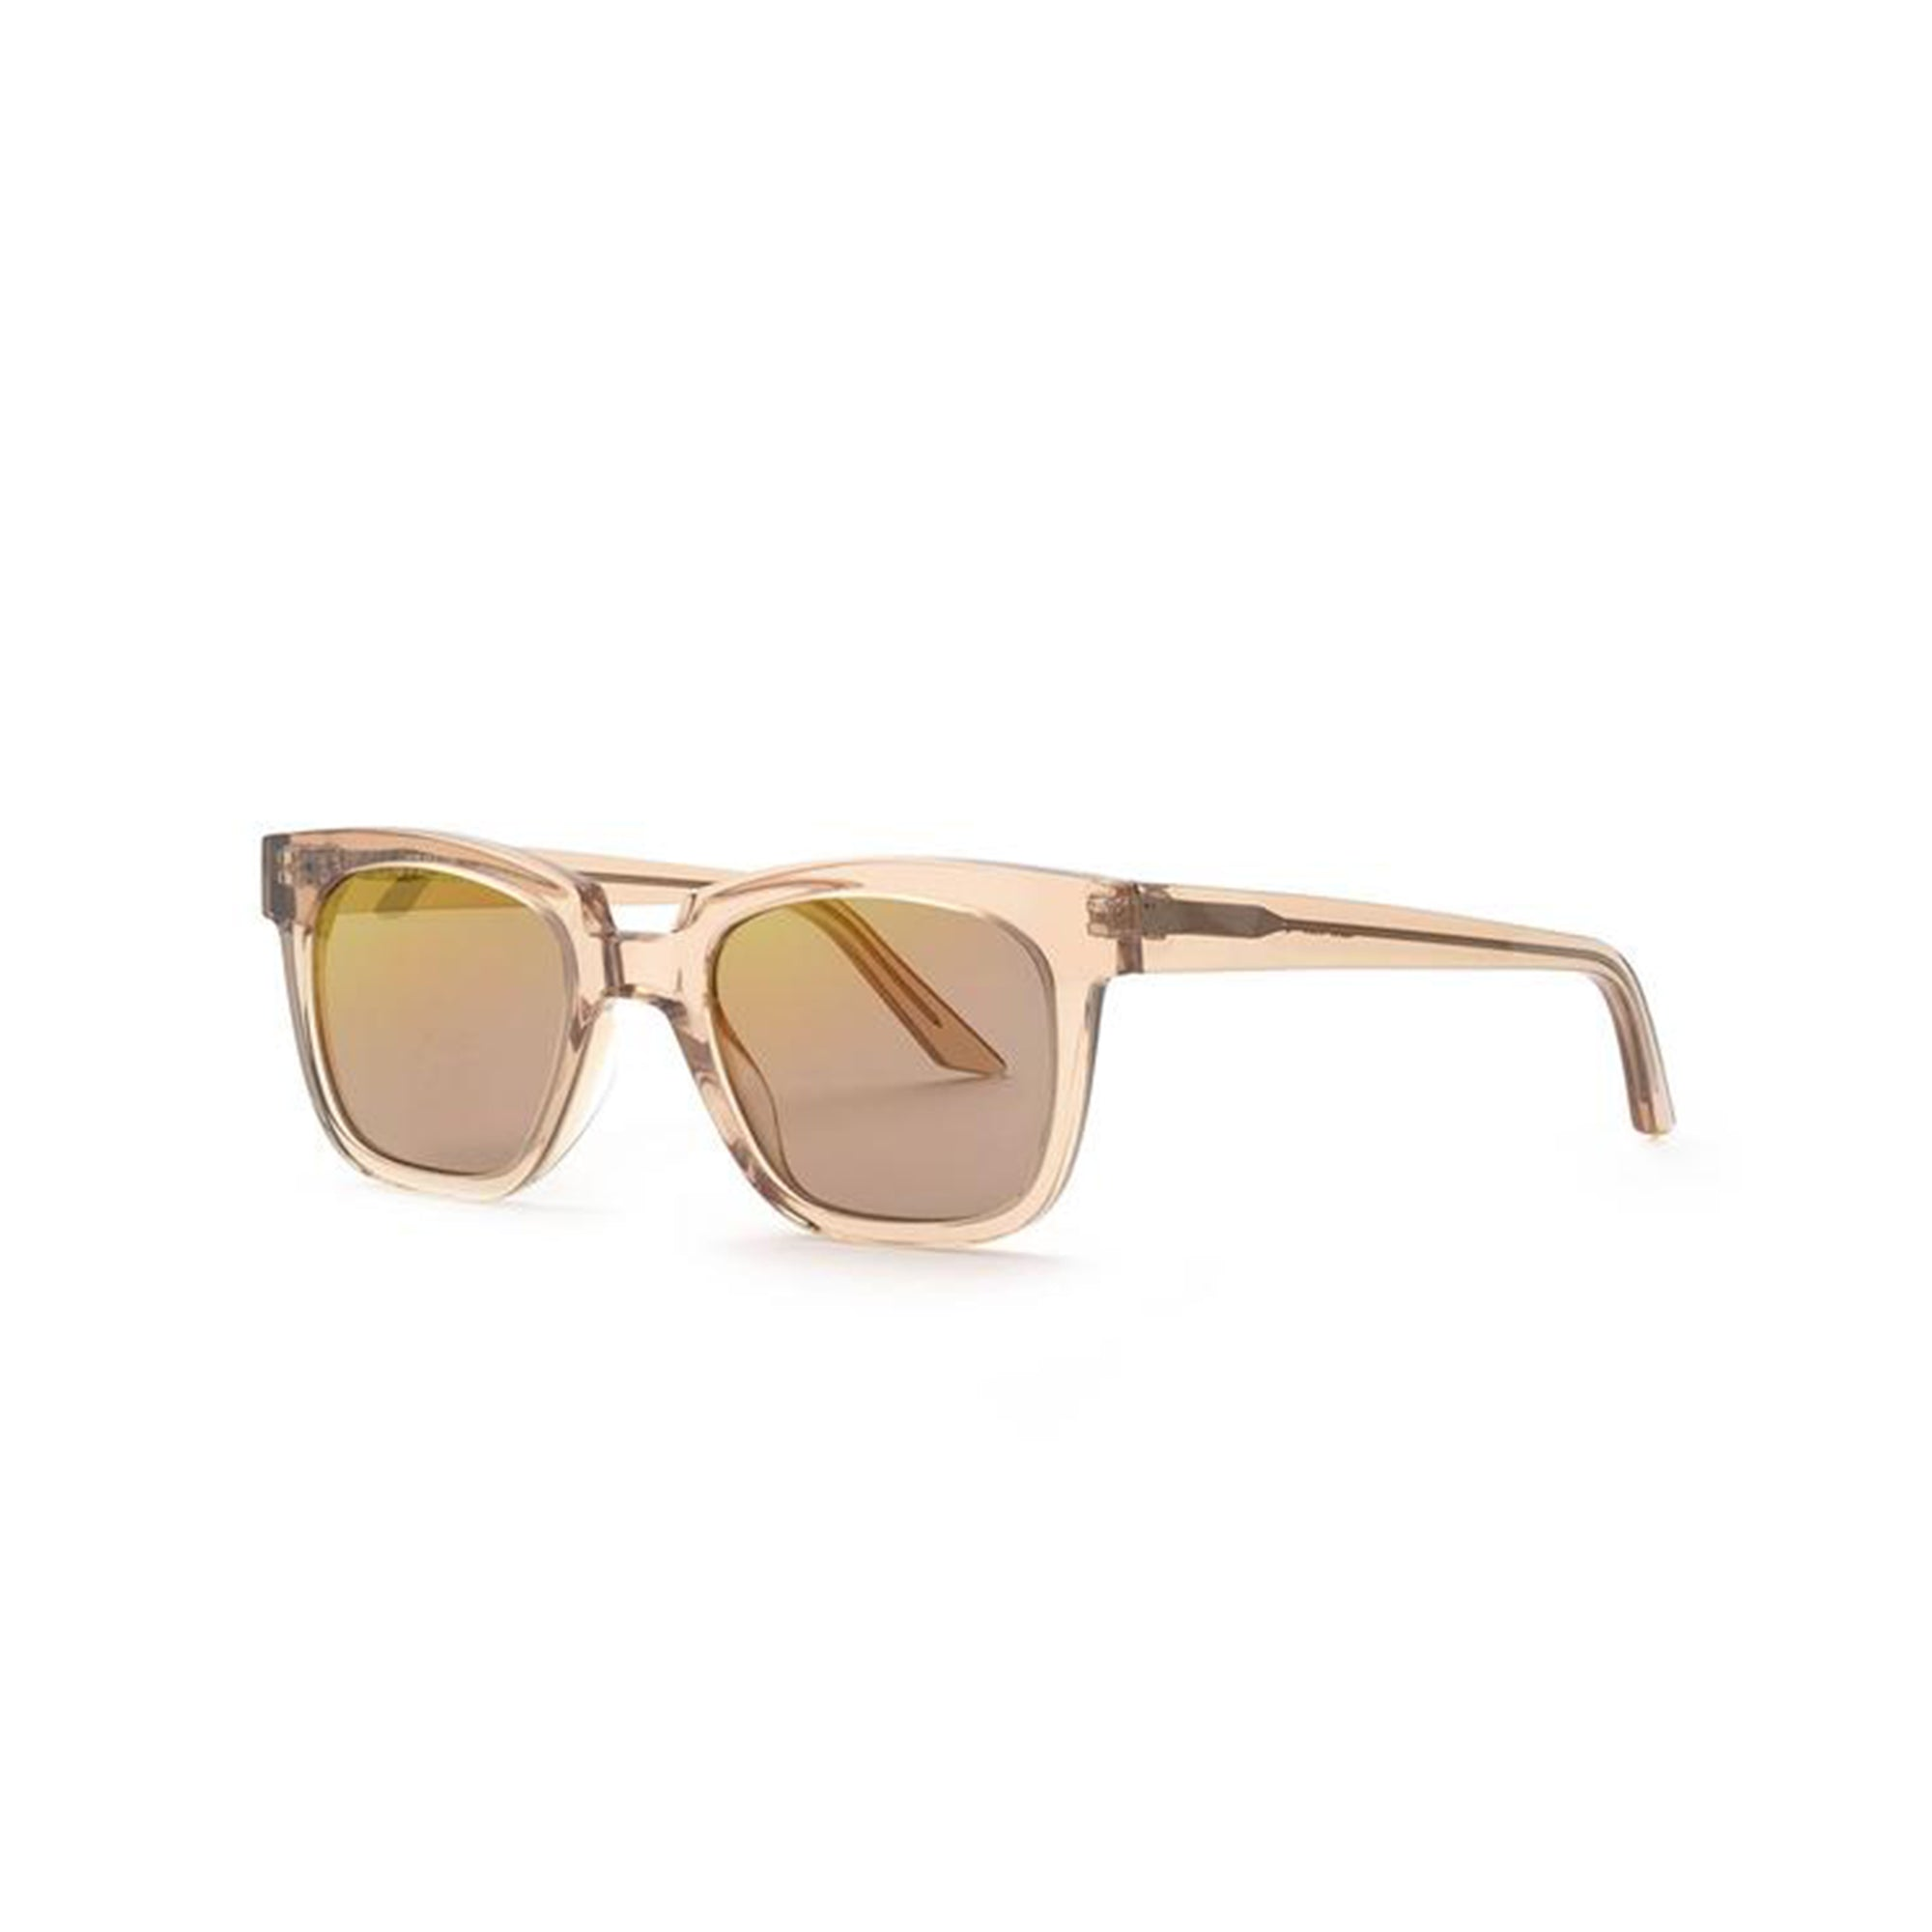 Lowercaser NYC Rebel Rebel Sunglasses Champagne